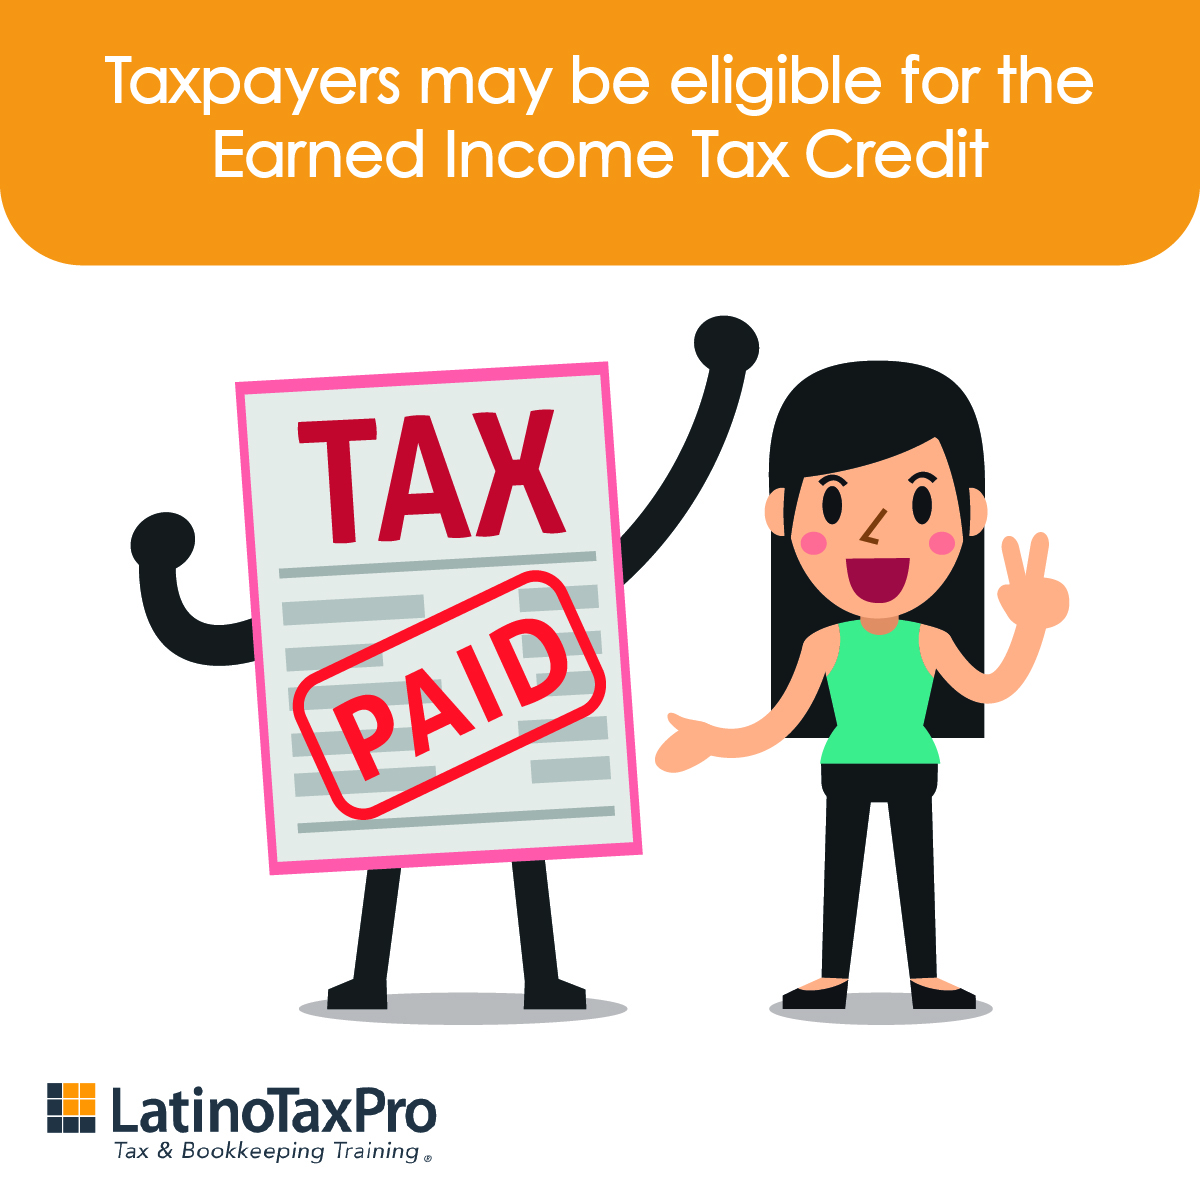 The Earned Income Tax Credit gives tax workers with low to moderate income a financial boost and may get them a refund even if they don't owe any taxes 💵 . . . . #taxes #tax #accounting #business  #taxpro #taxrefund #irs #taxtip #refund #taxprep #taxhelp #latinotaxpro #impuestos